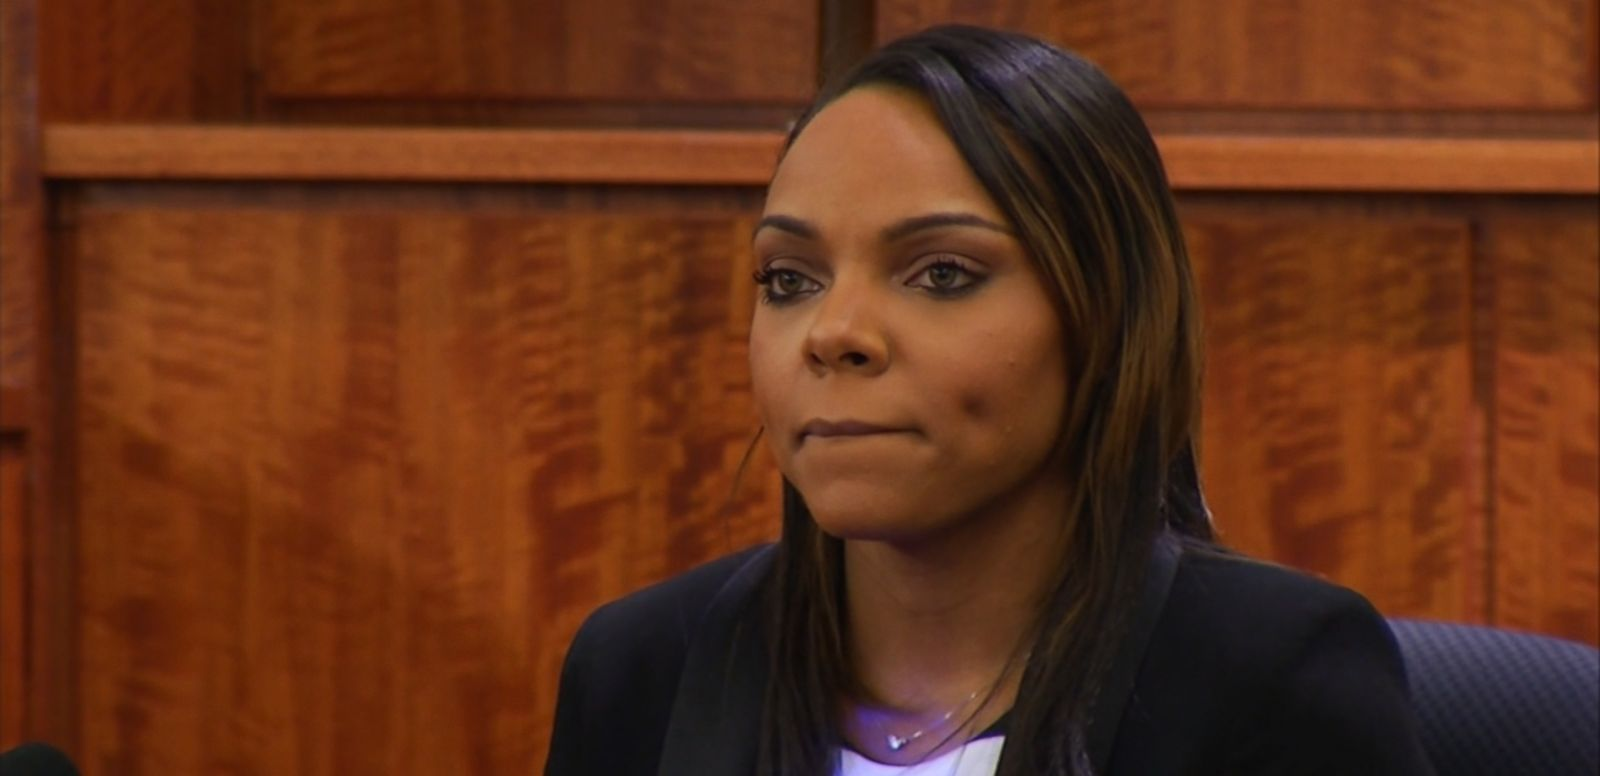 VIDEO: Shayanna Jenkins testifies that Aaron Hernandez told her to remove a box from the home they shared on the afternoon Odin Lloyd was killed.